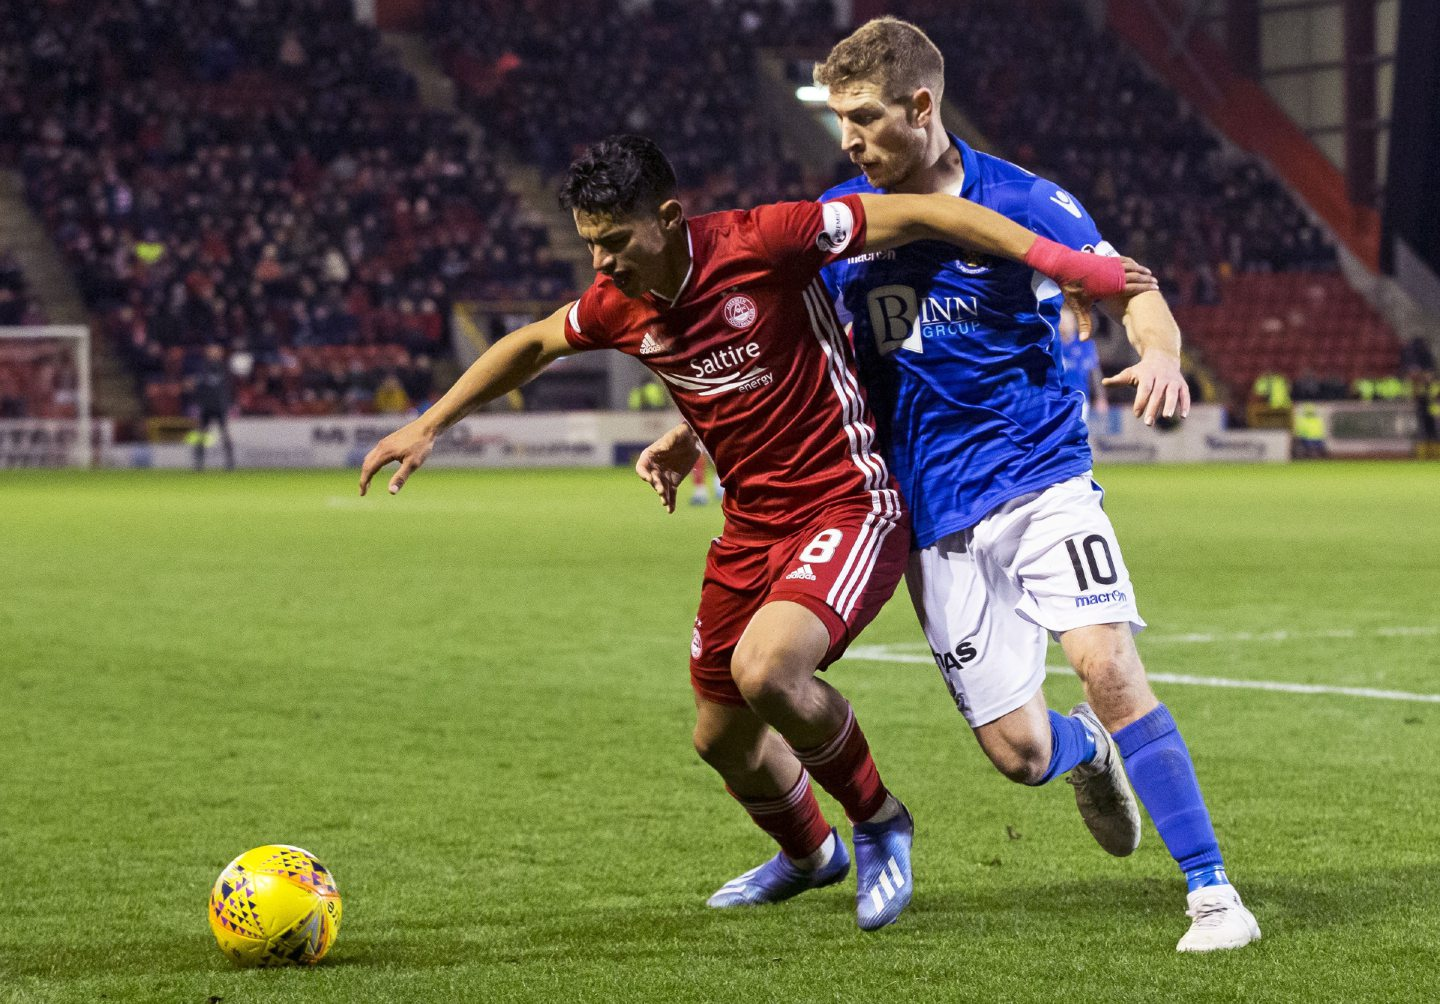 Aberdeen's Ronald Hernandez is challenged by St Johnstone's David Wotherspoon during the Ladbrokes Premiership match between Aberdeen and St Johnstone at Pittodrie Stadium on February 5.